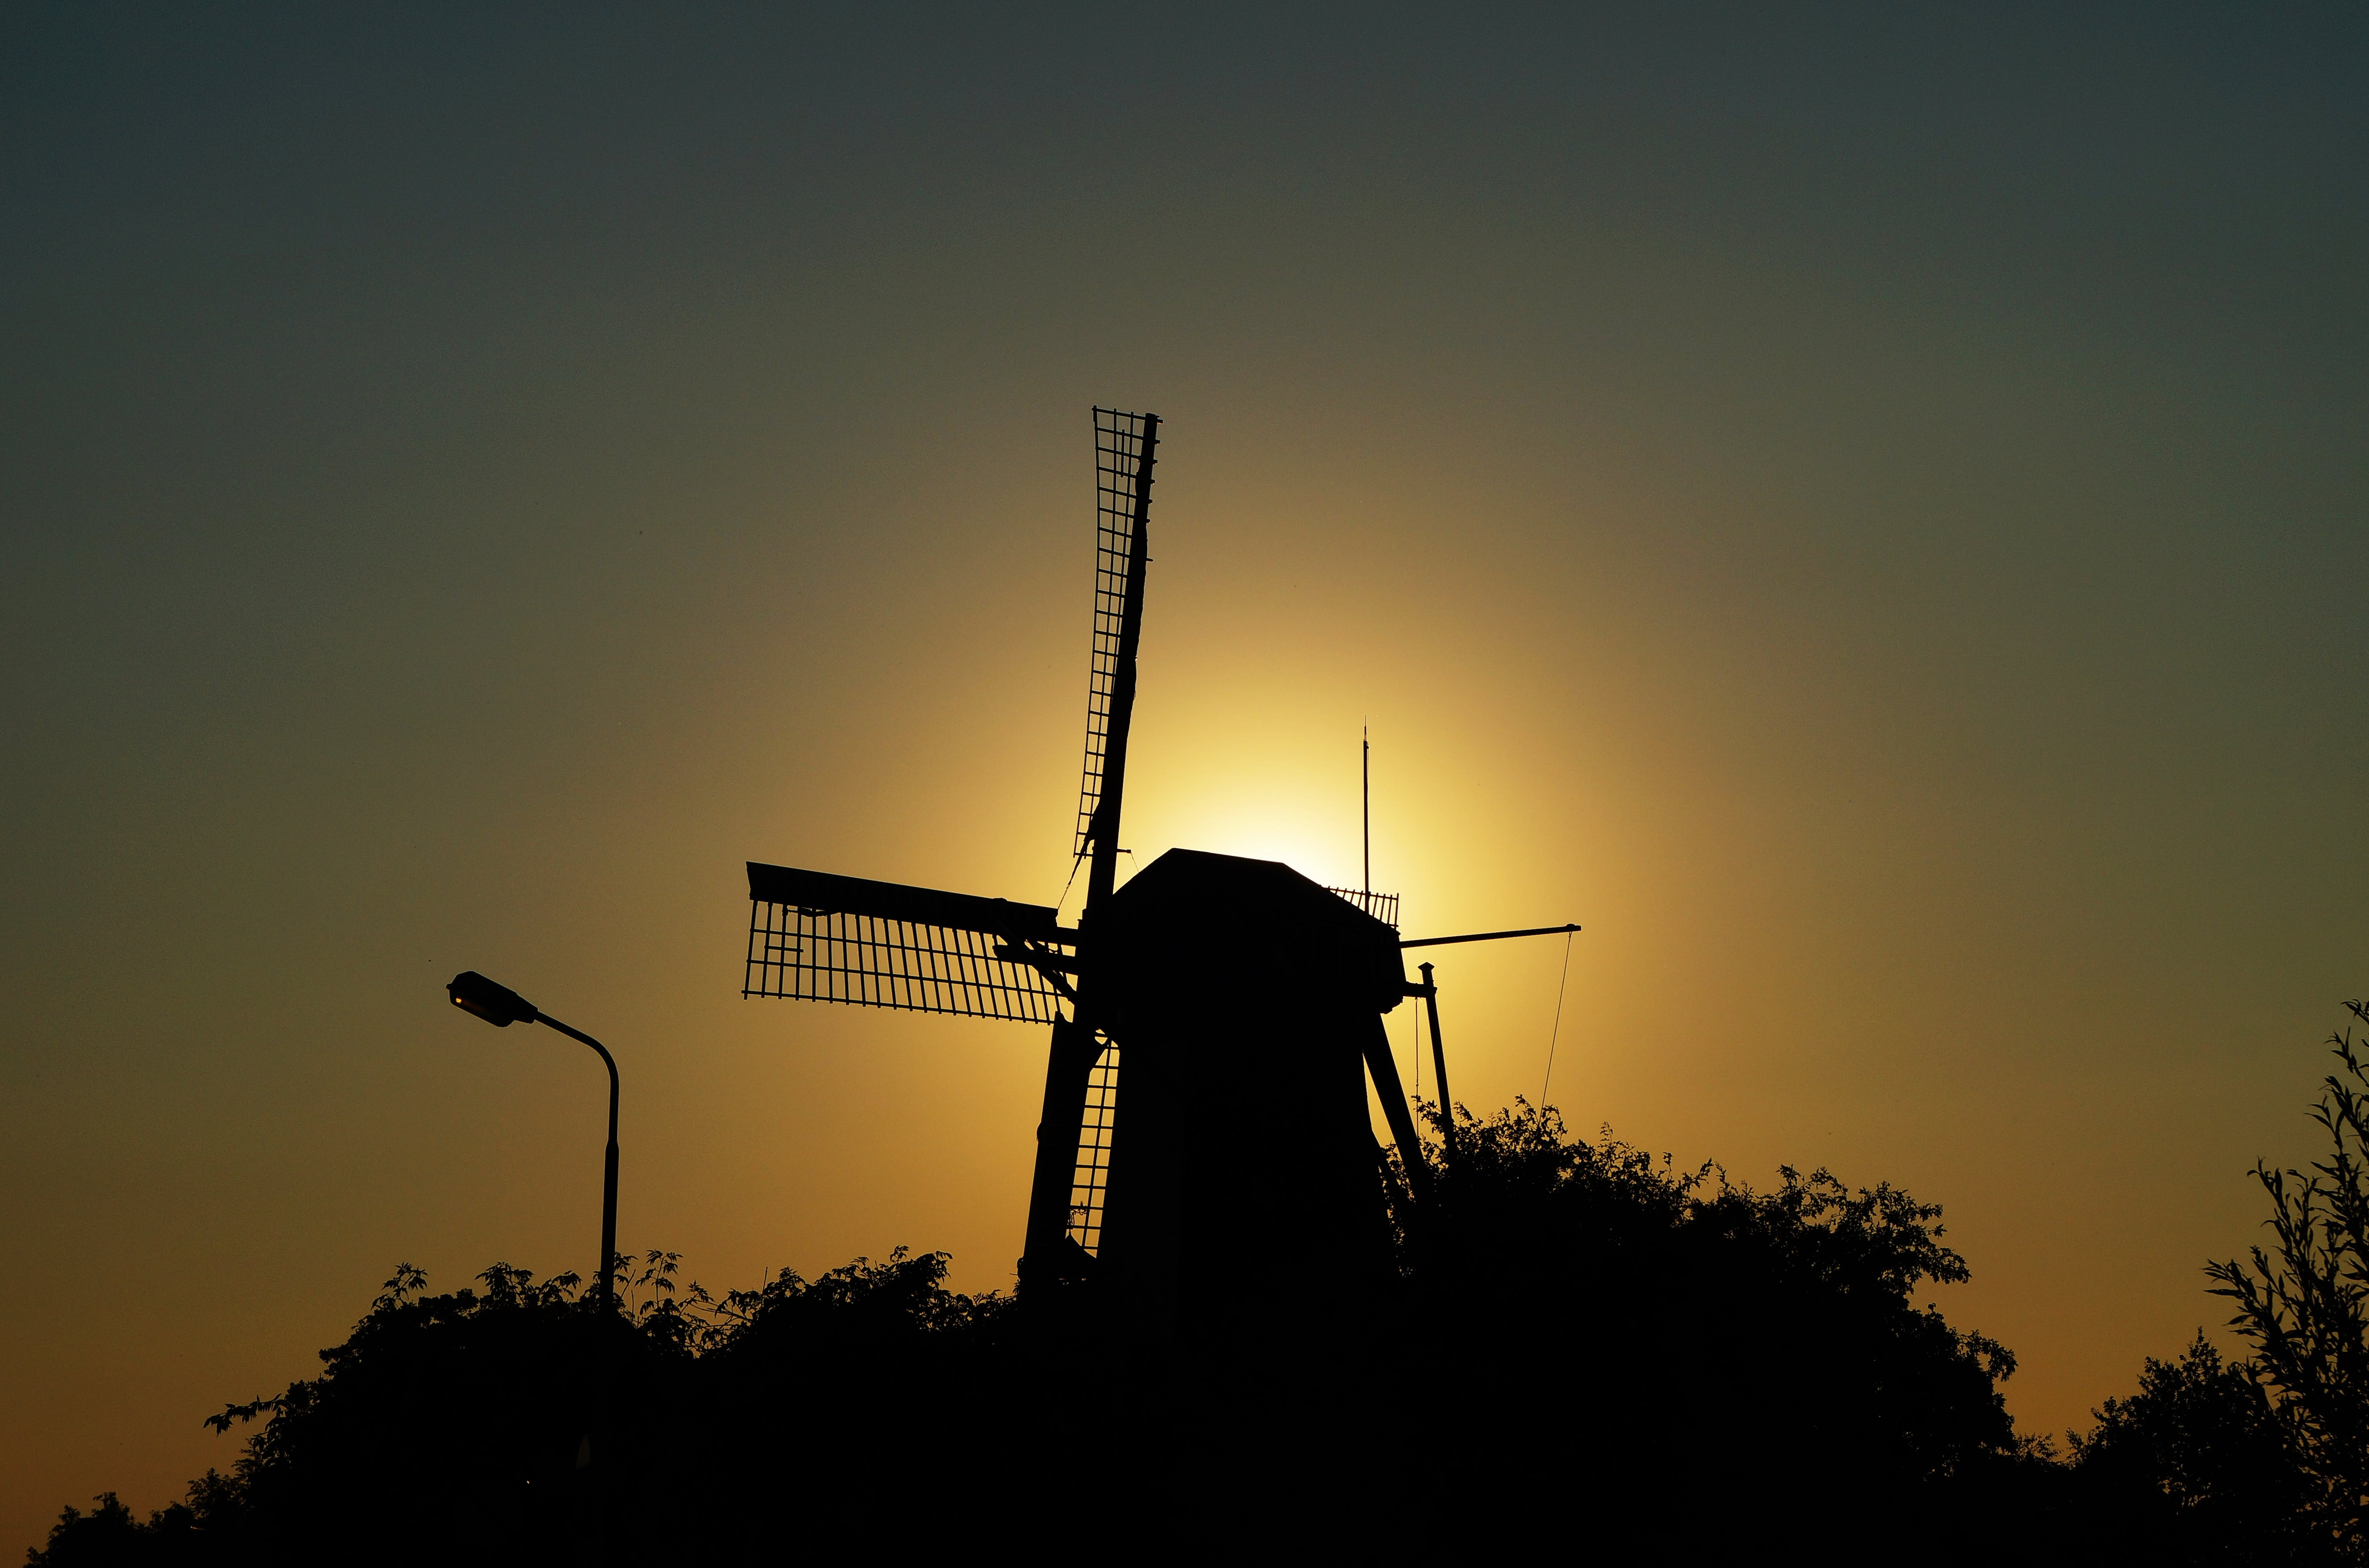 Silhouette of Windmill during Sunset